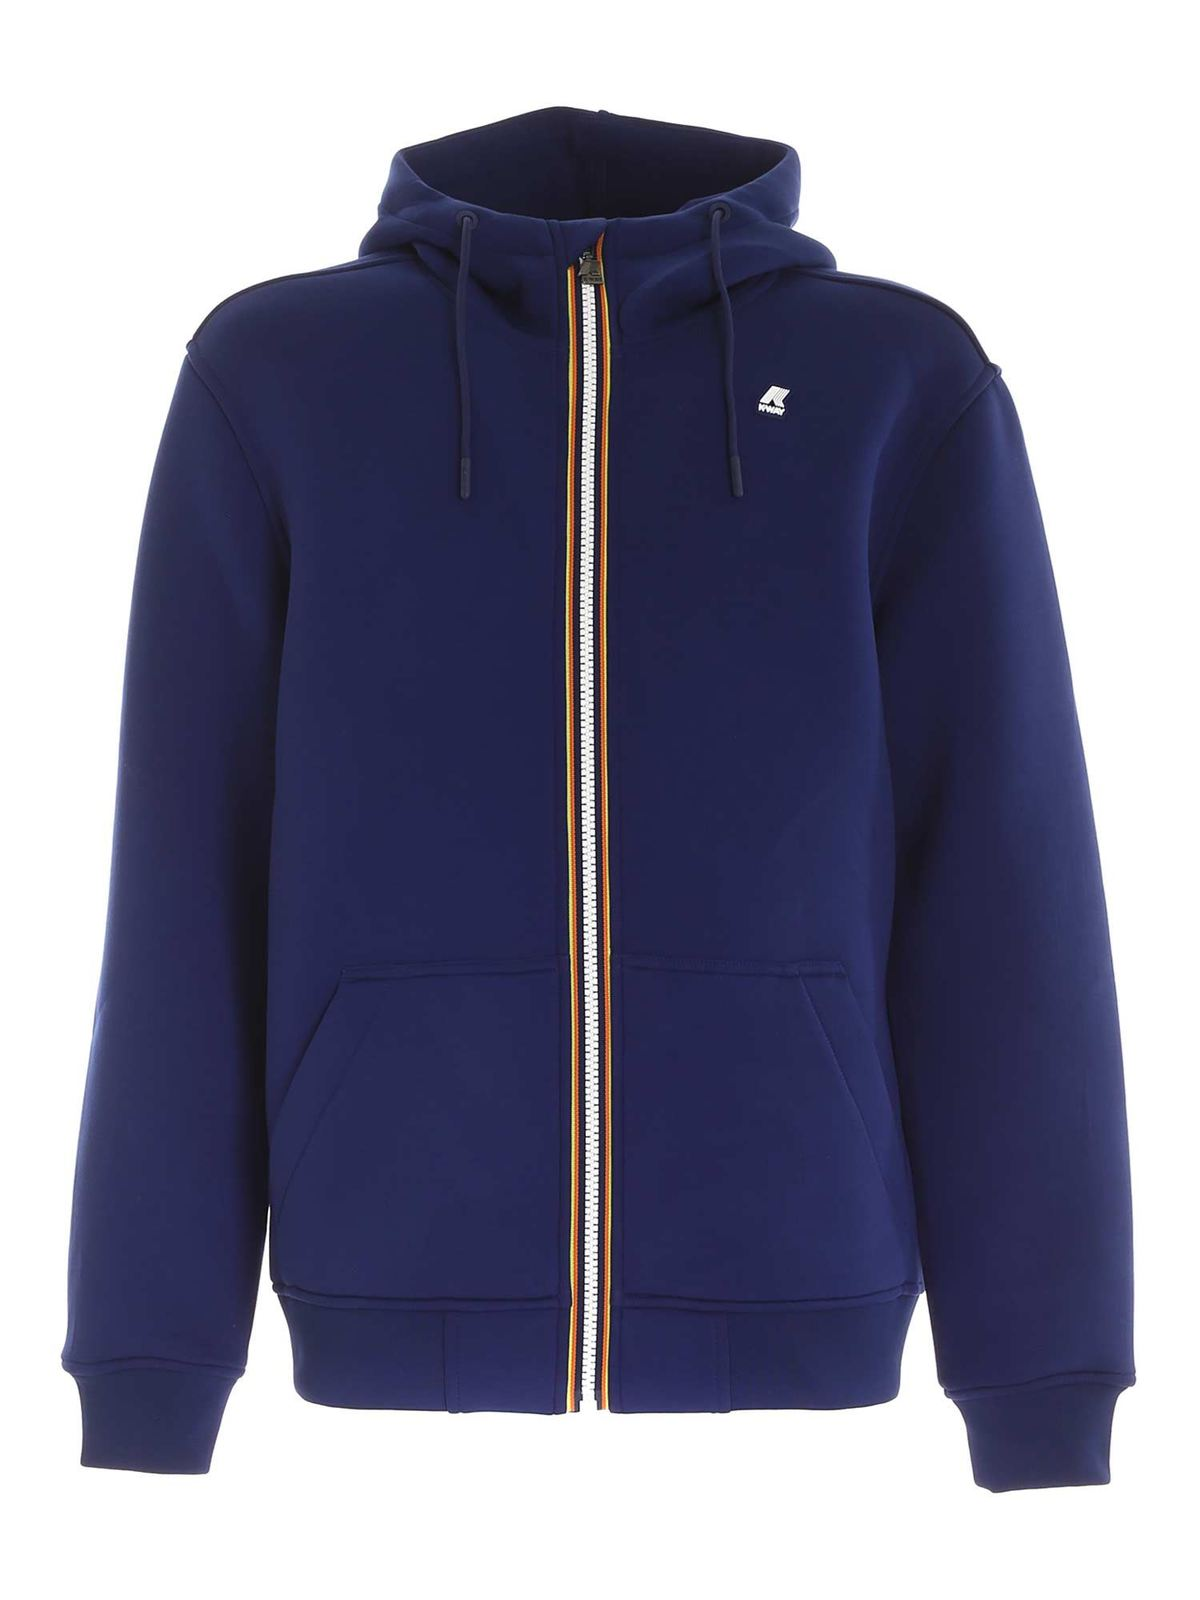 K-WAY BERENGER SPACER HOODIE IN BLUE